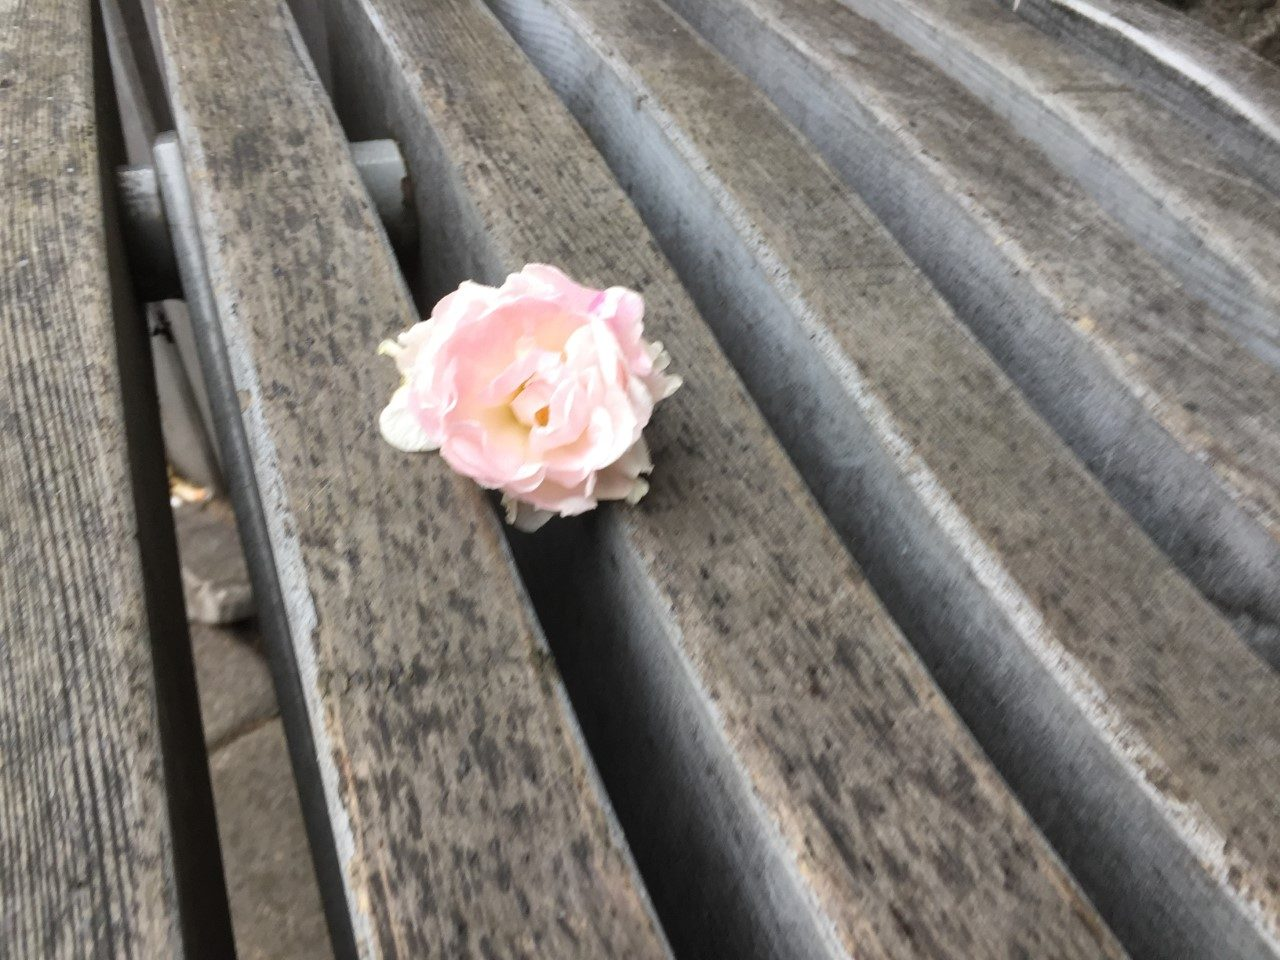 Writing prompt: A wooden table. Slanted slats like prison bars. A flower blossoming, poking through.